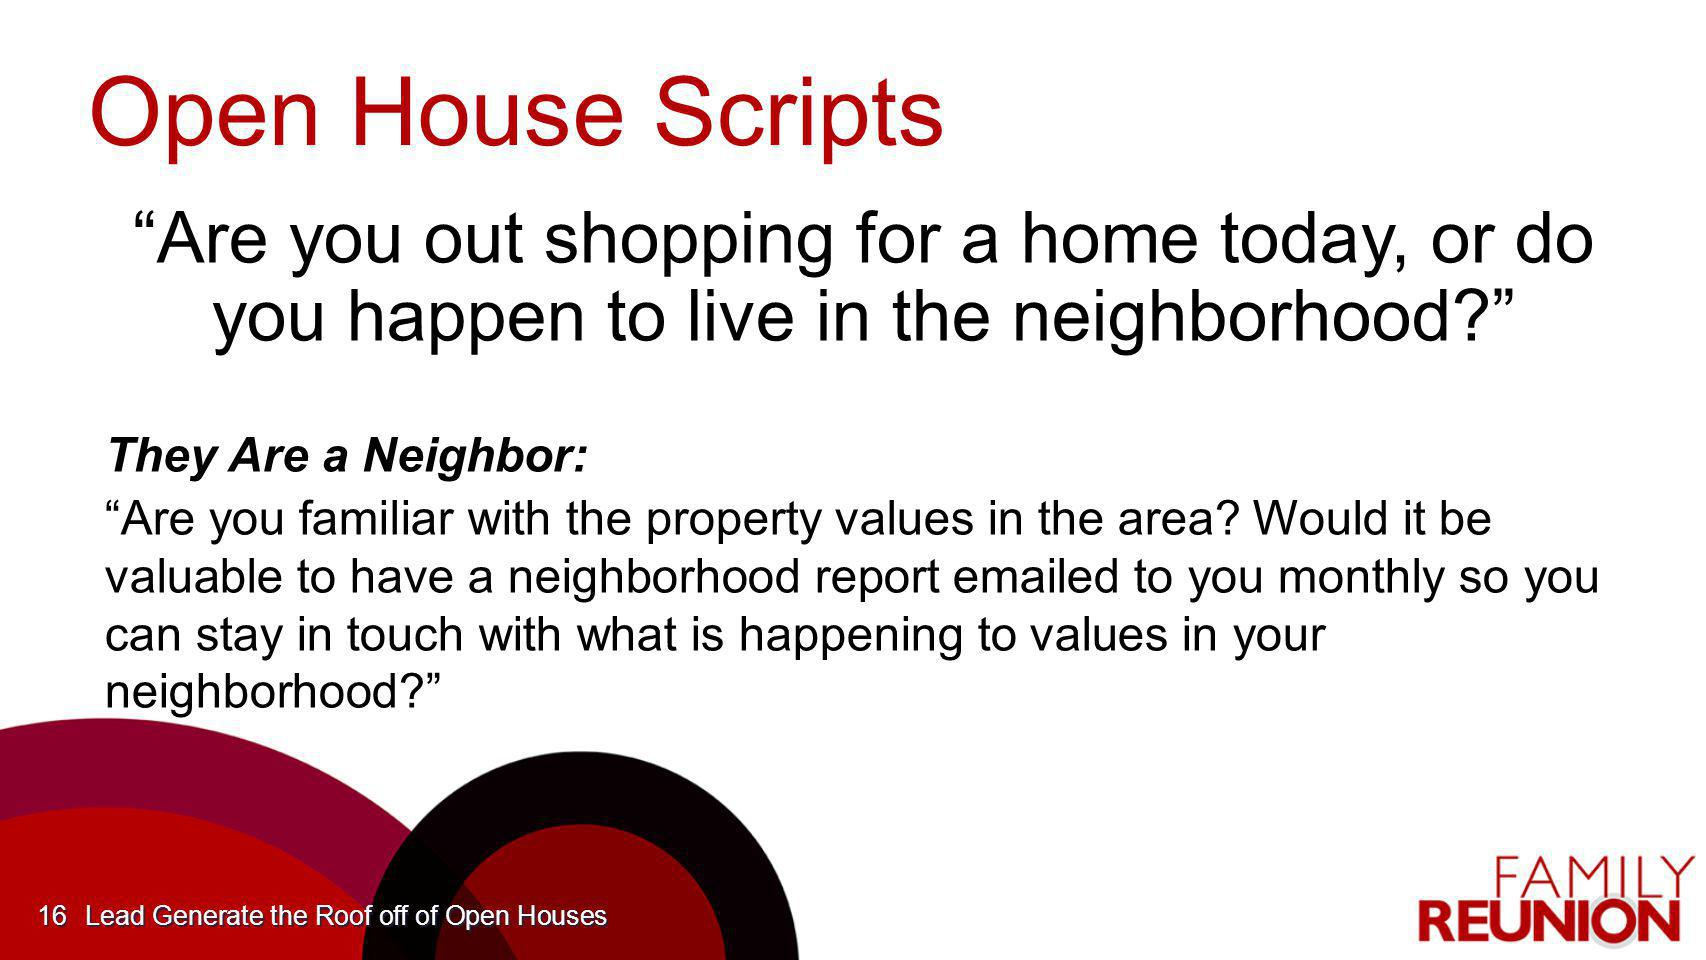 KWFR14 3/31/2017 6:29:16 PM. Open House Scripts. Are you out shopping for a home today, or do you happen to live in the neighborhood